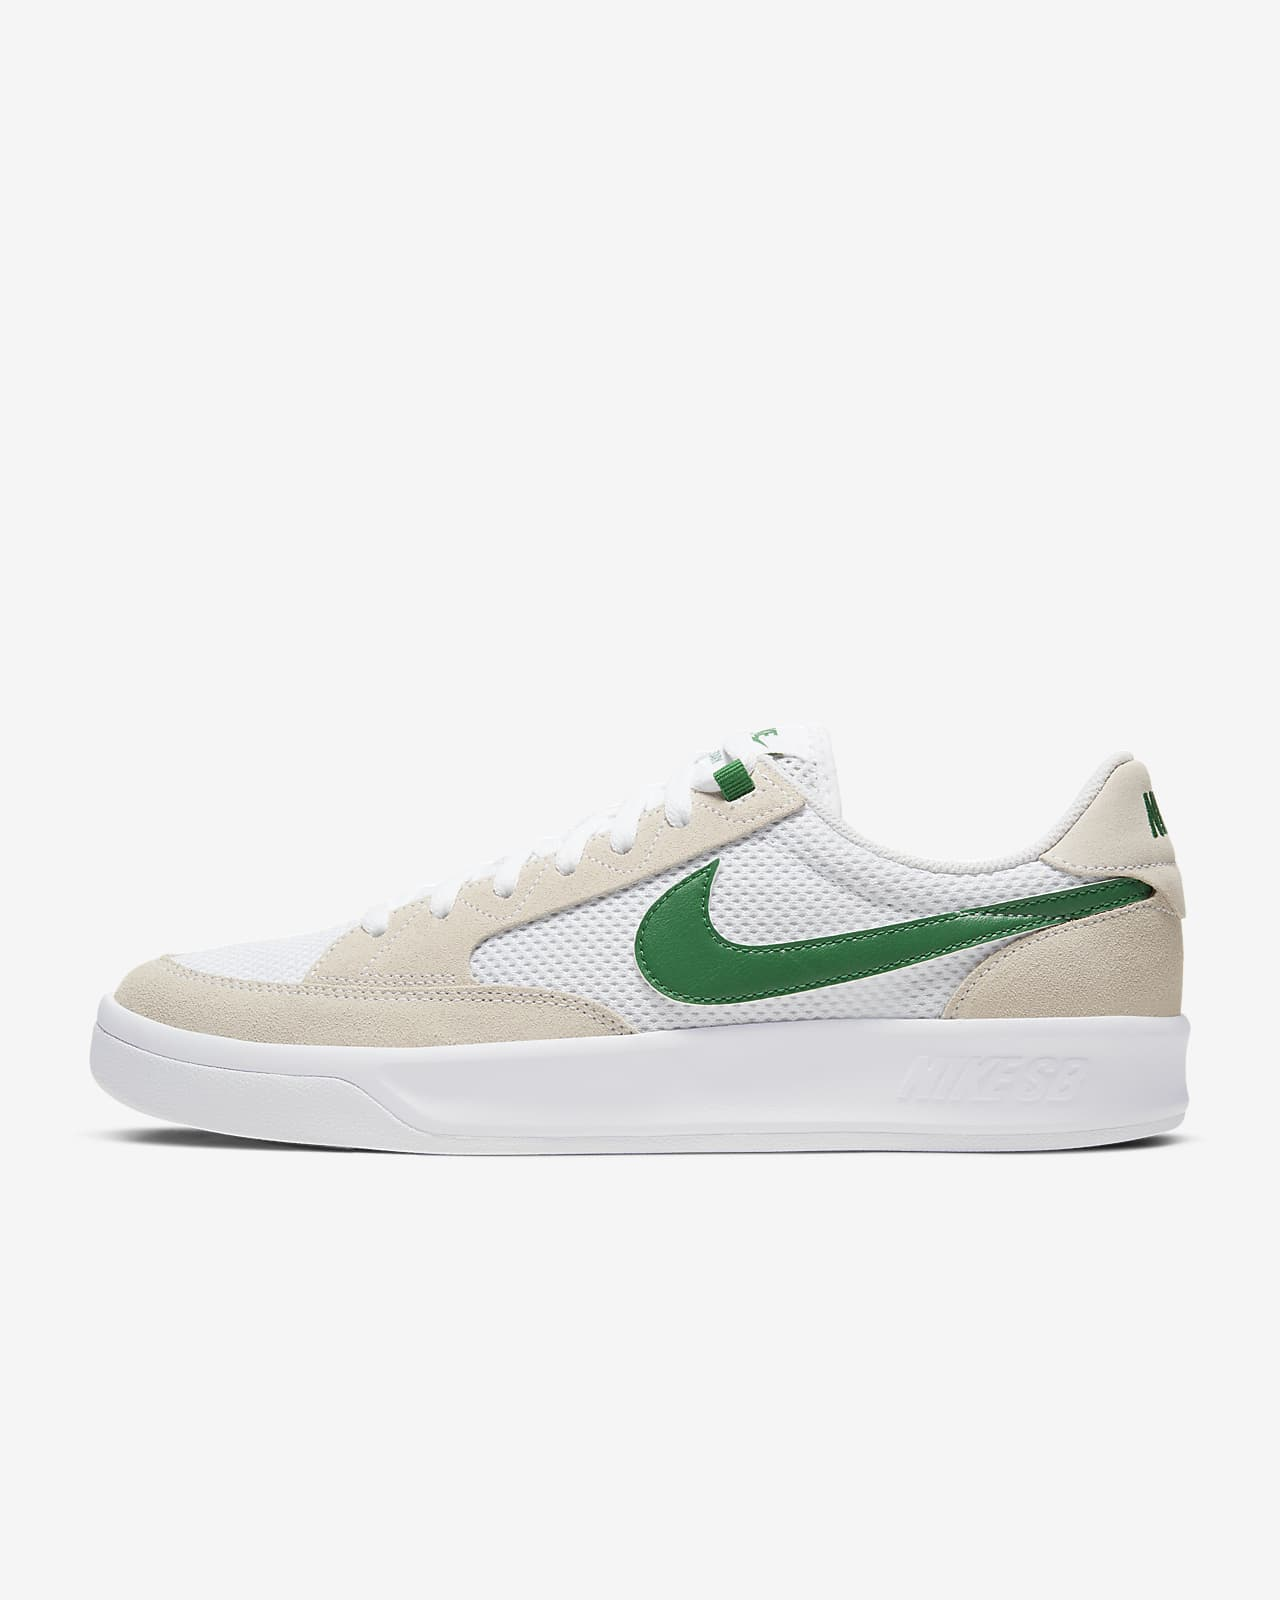 Nike SB Adversary Skate Shoe